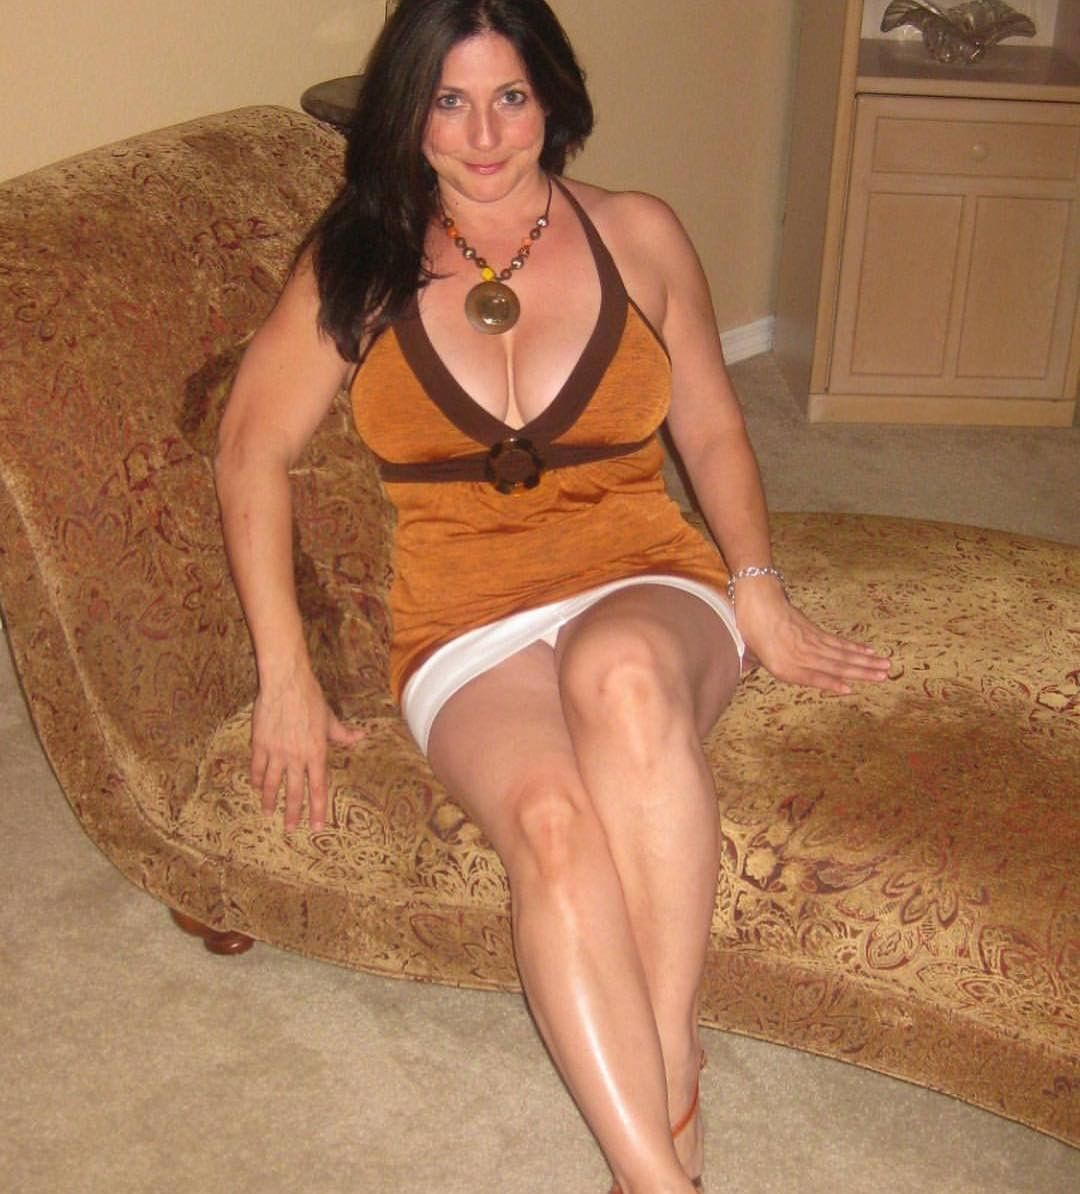 south strafford milf personals Tahuya wa milf personals sexy wives seeking casual dating married woman looking sexy woman searching sex dating hot women massage couple searching porno dating pussy tonight any real girls out there.